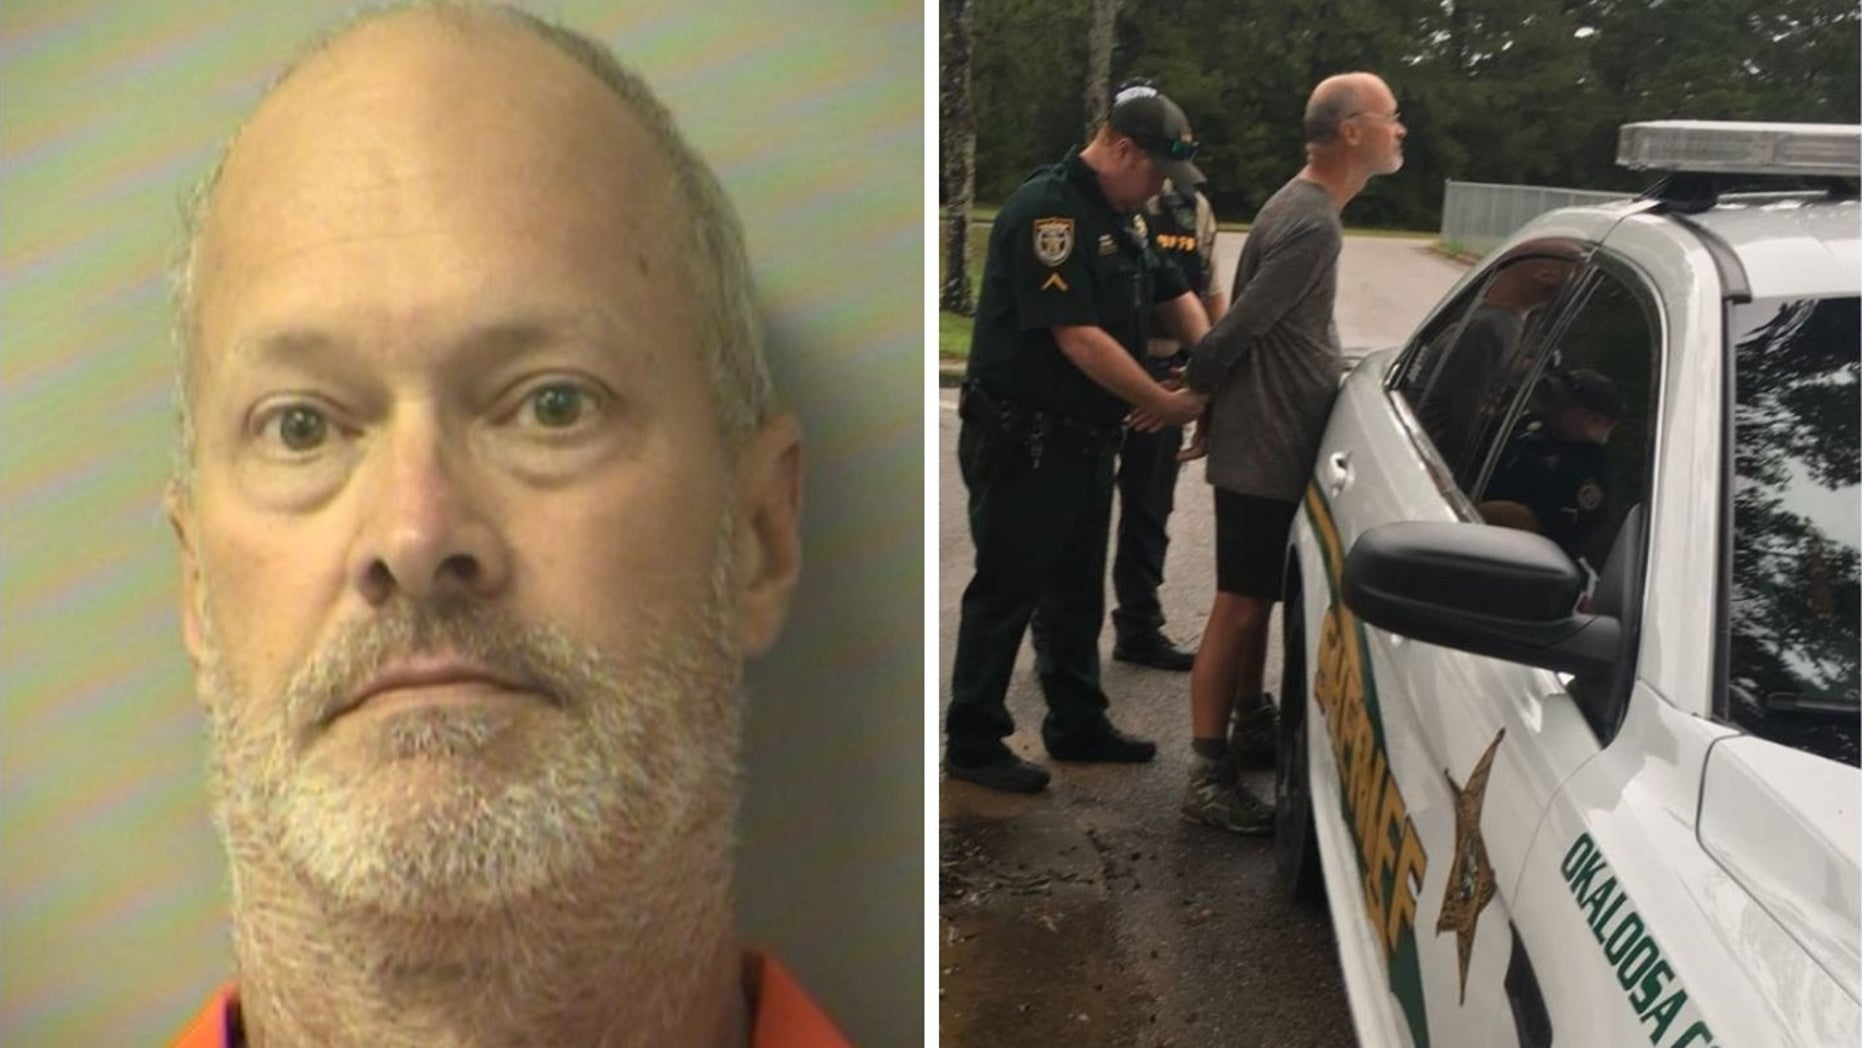 John Stapleton is accused of molesting a 6-year-old girl.